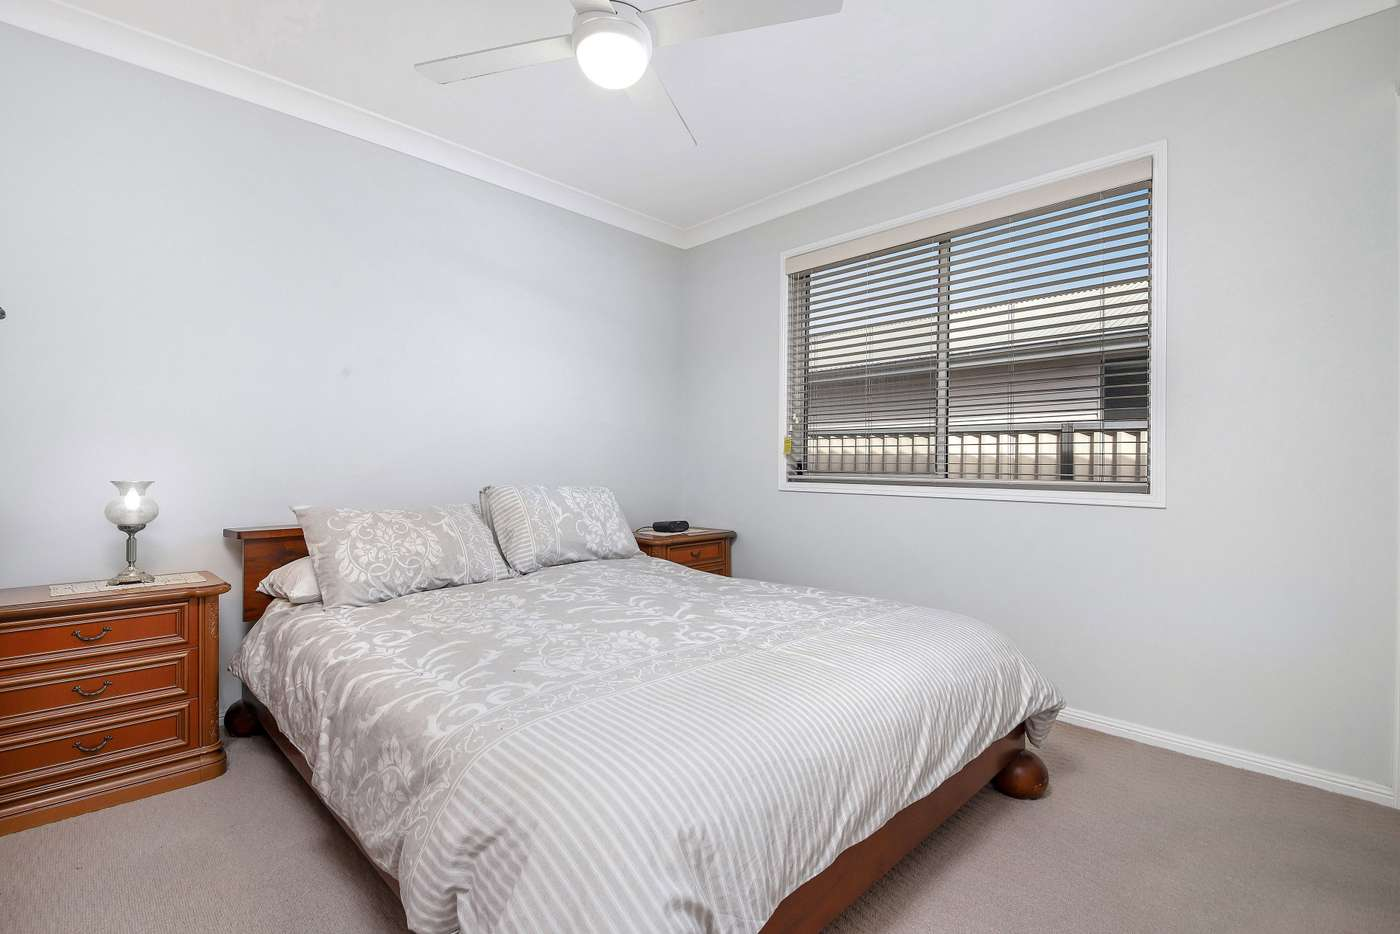 Fifth view of Homely house listing, 7/713 Hume Highway, Bass Hill NSW 2197